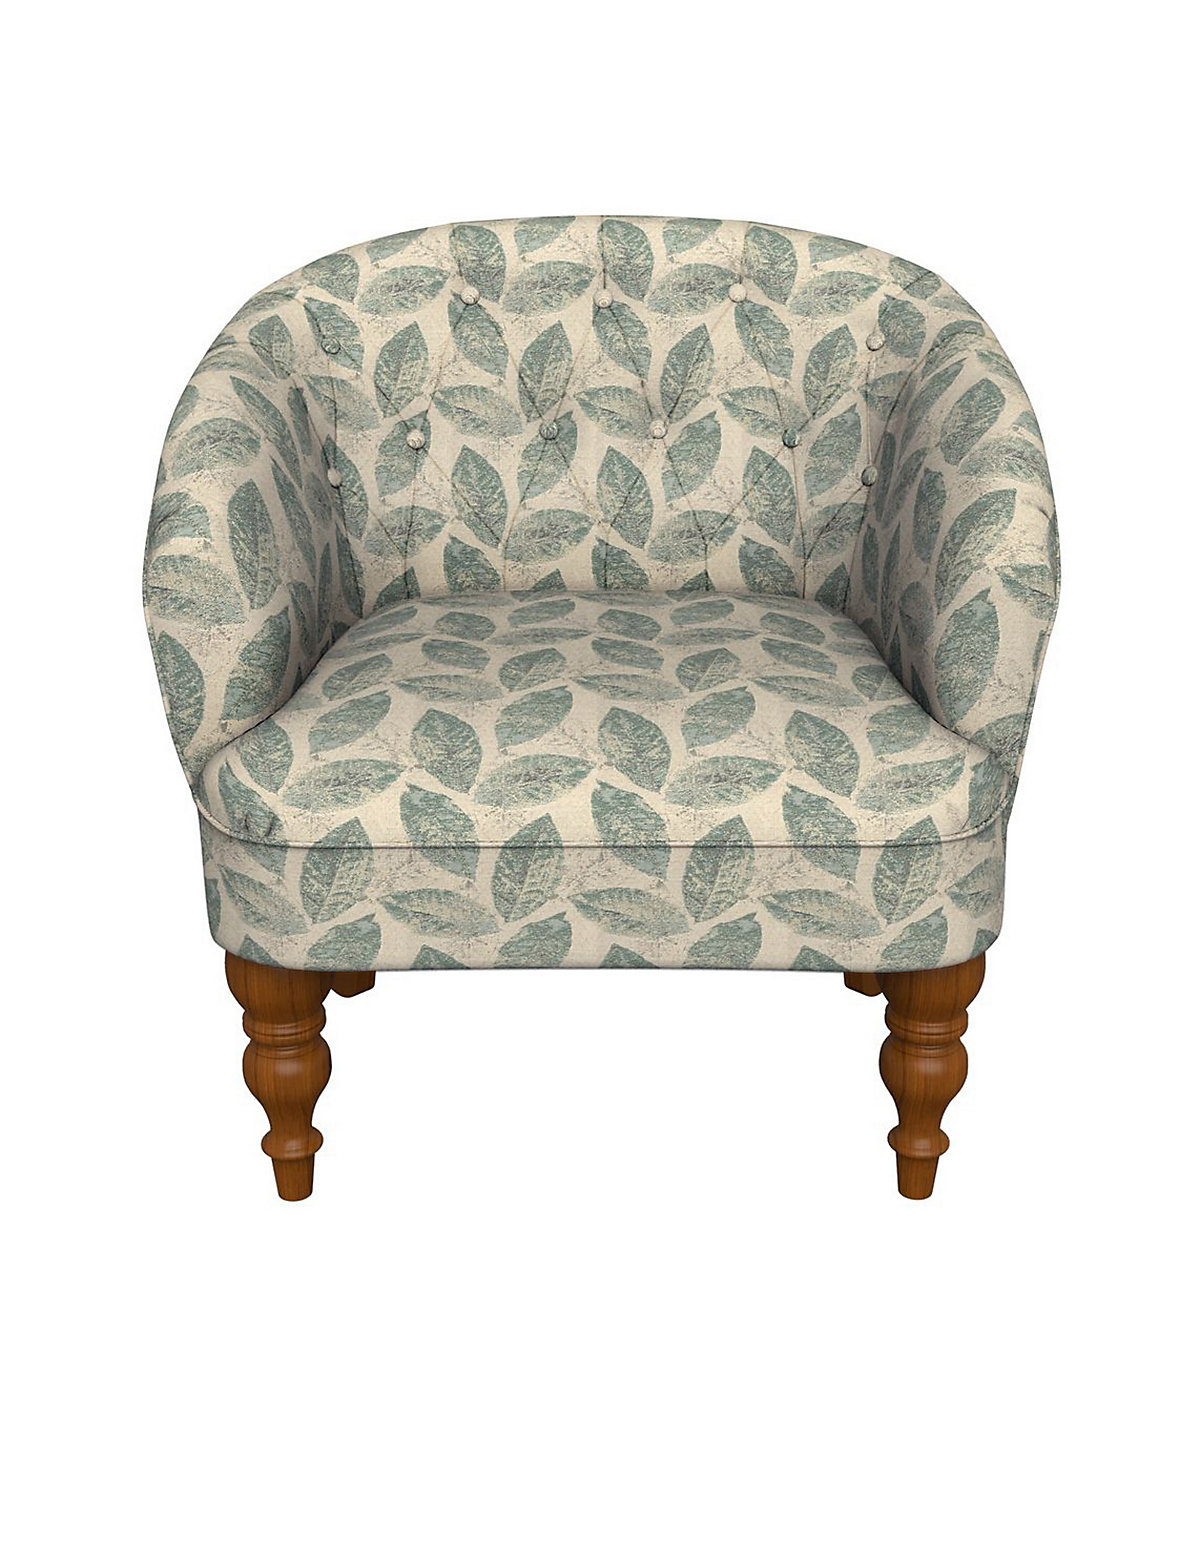 Express Mersea Armchair - Next Day Delivery